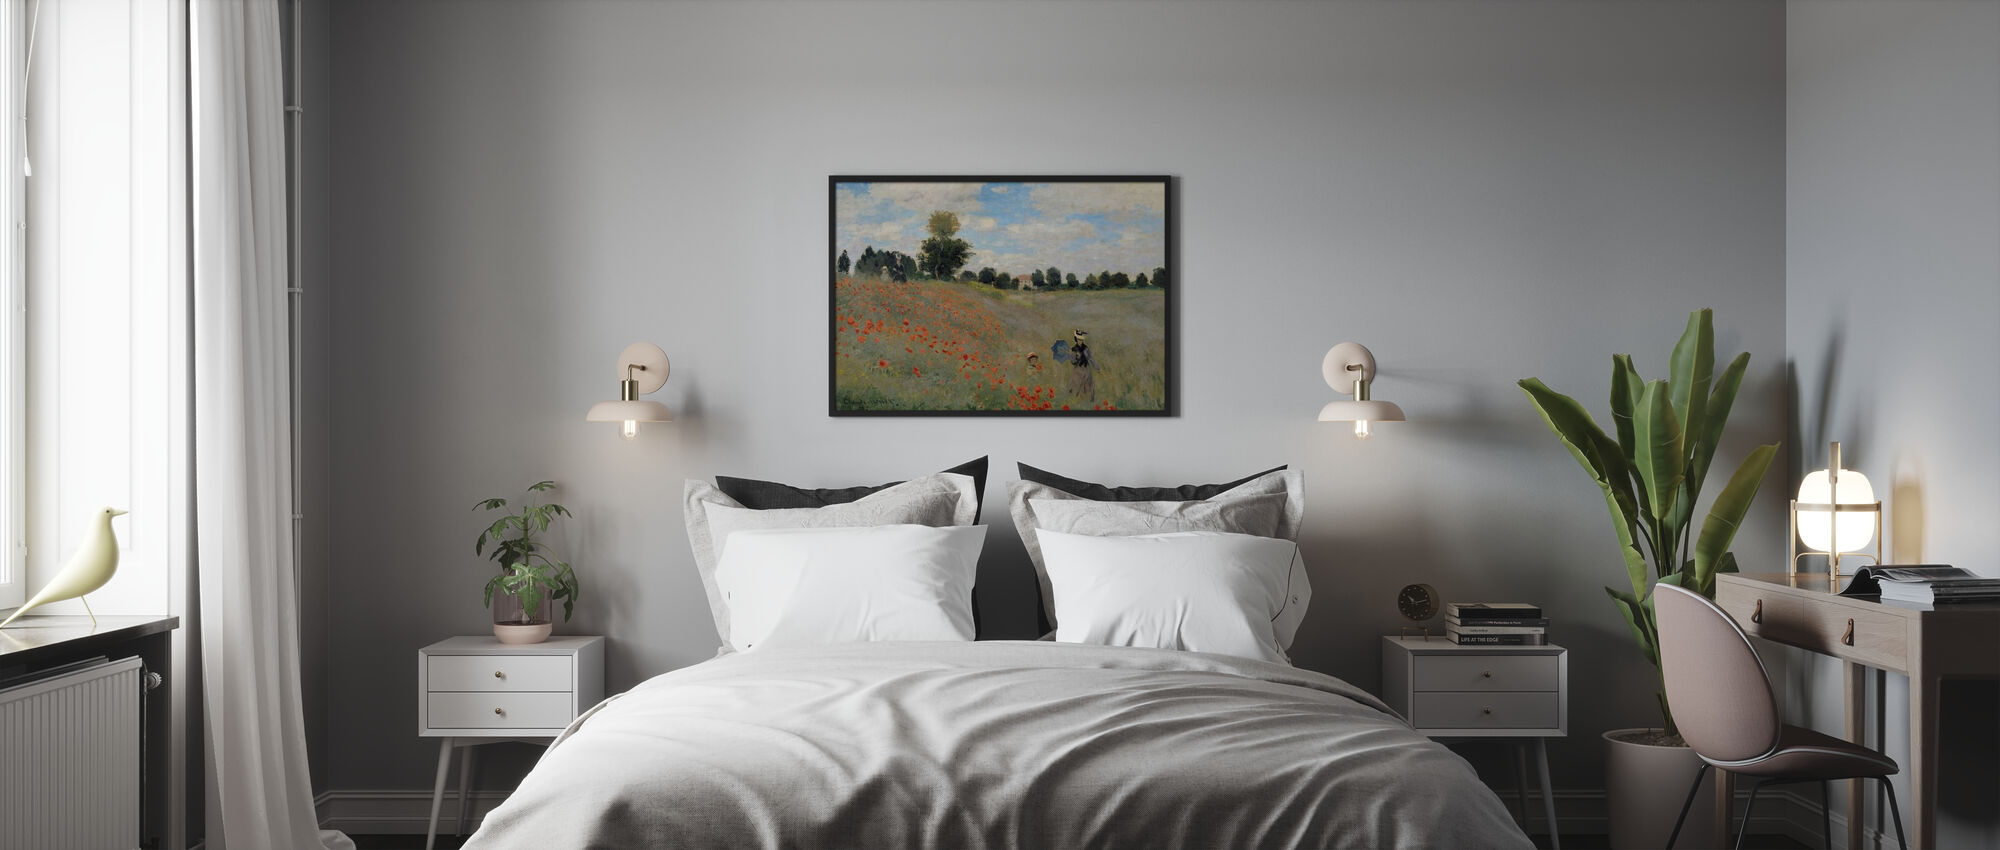 Wild Poppies - Claude Monet - Poster - Bedroom